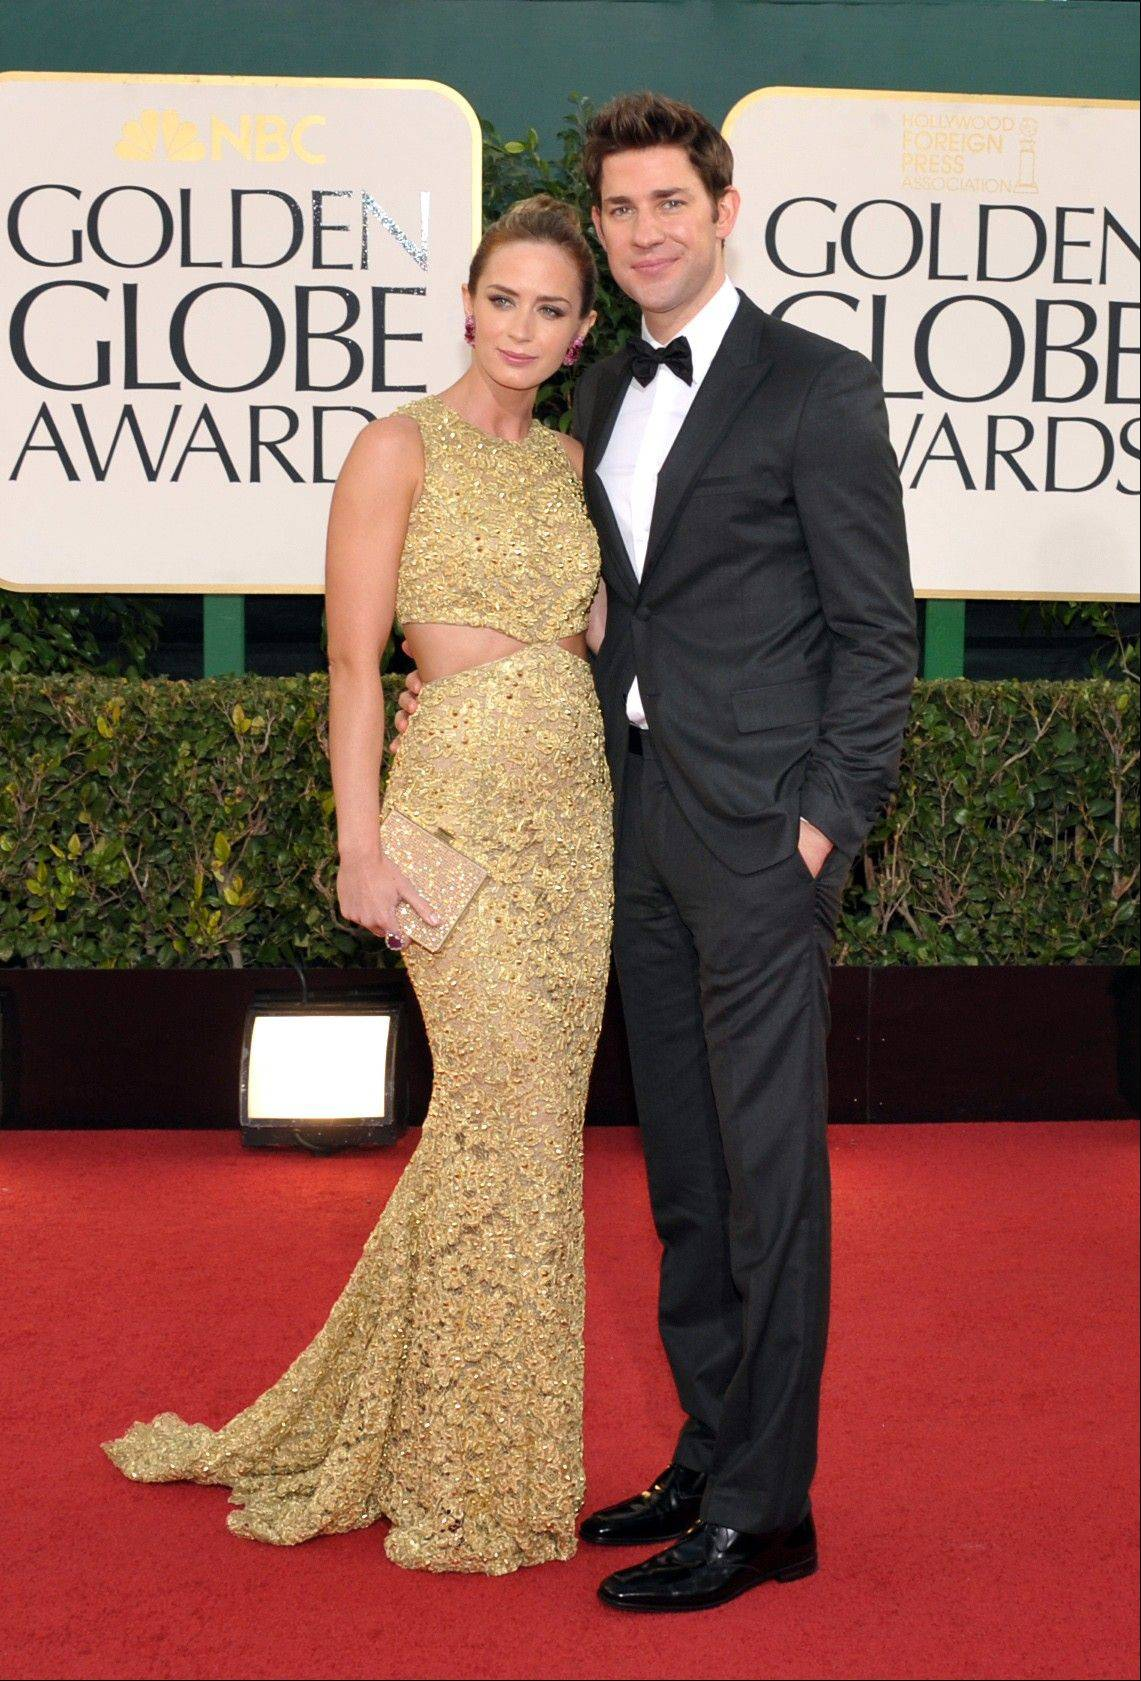 "Actress Emily Blunt and her husband, ""The Office"" star John Krasinski, arrive at the 70th Annual Golden Globe Awards at the Beverly Hilton Hotel on Sunday Jan. 13, 2013, in Beverly Hills, Calif."